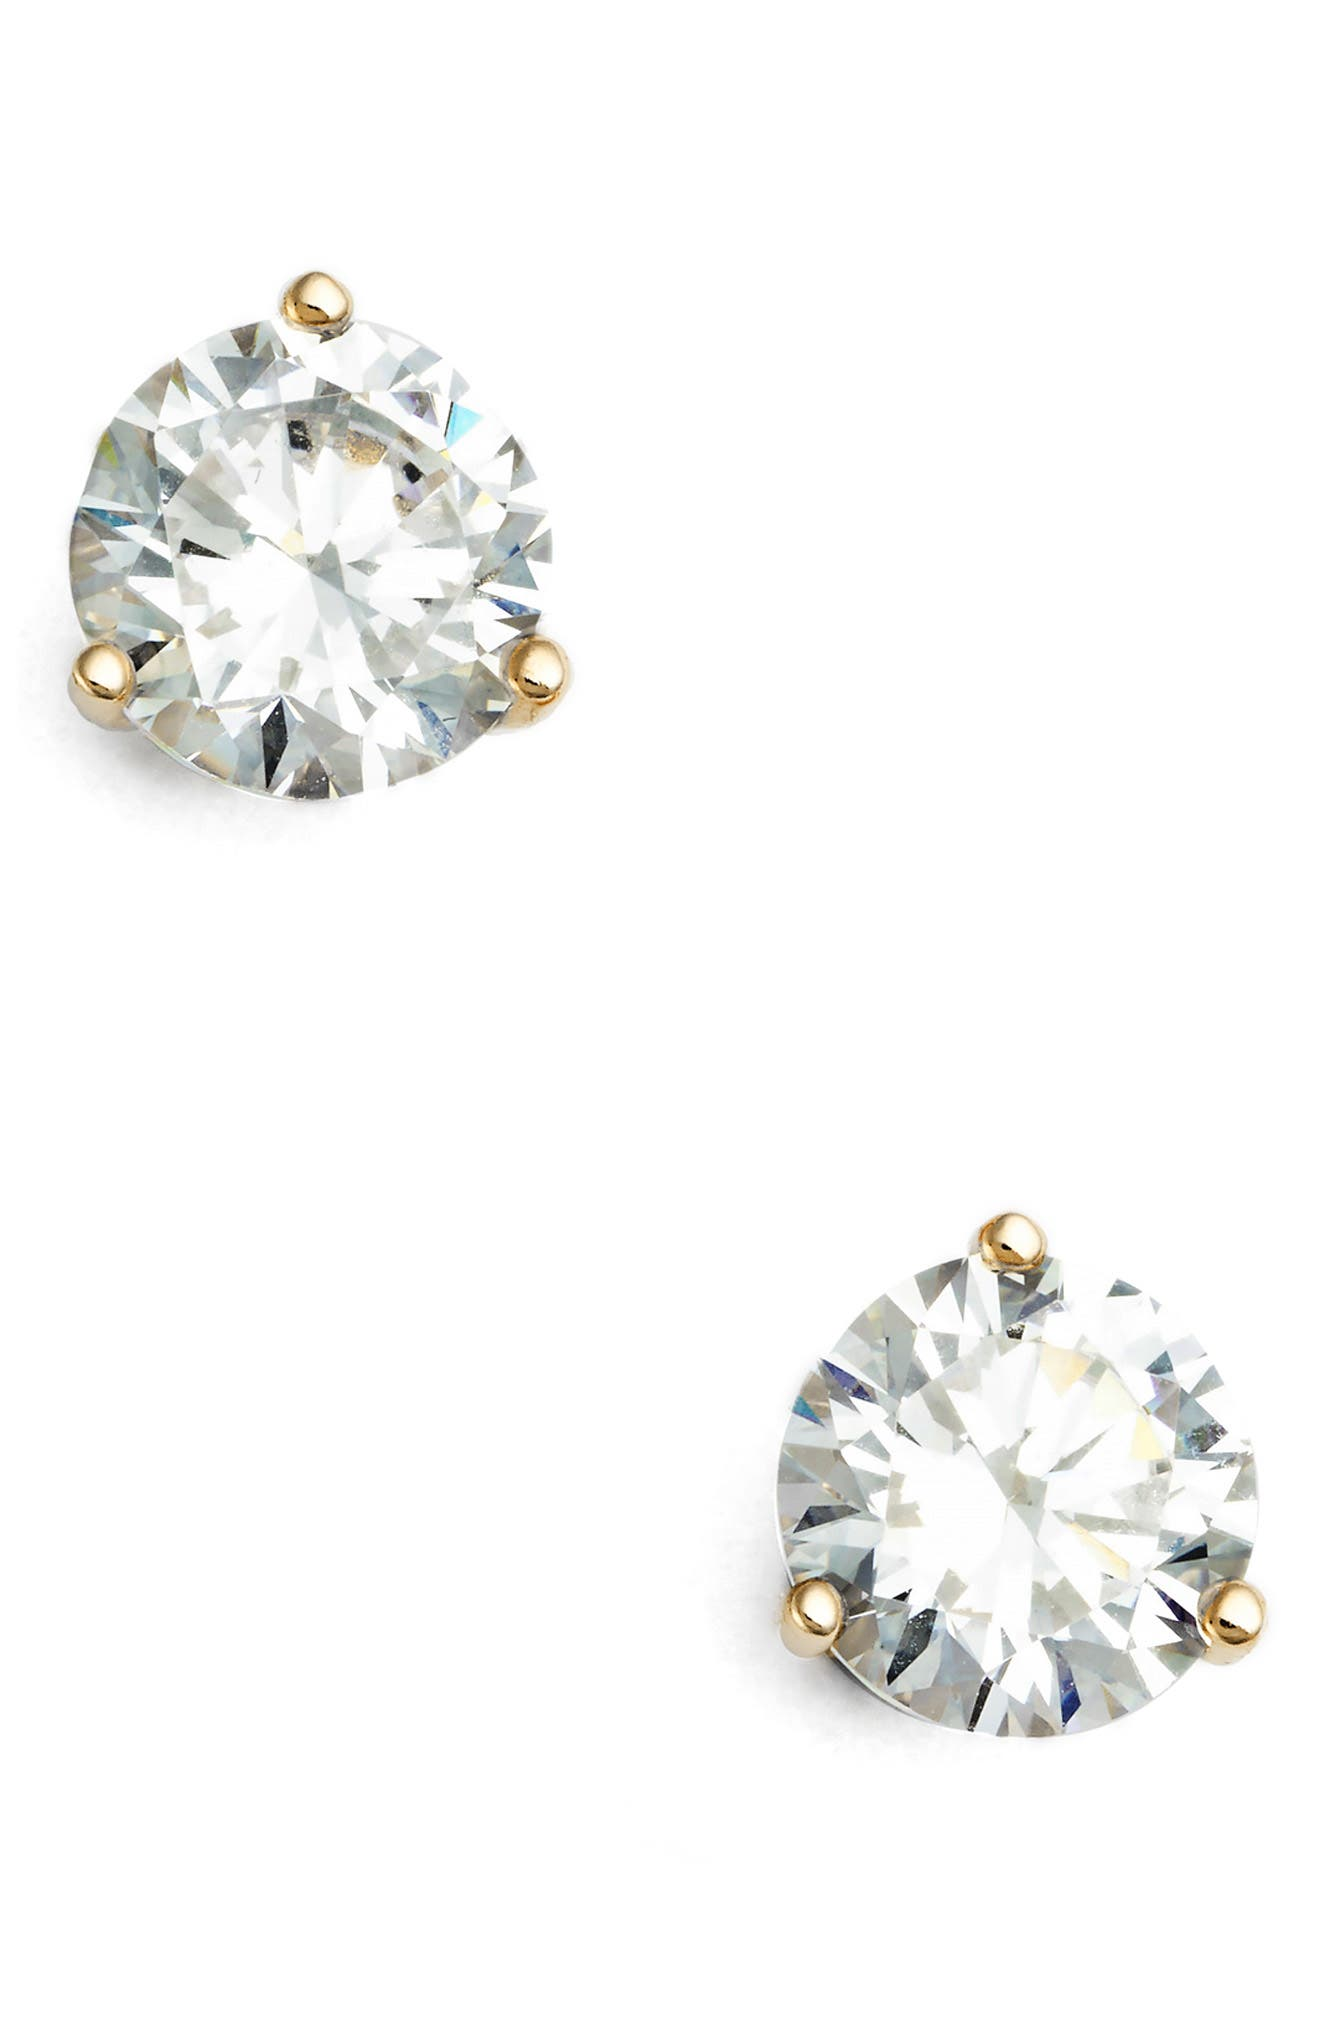 Main Image - Nordstrom Precious Metal Plated 2ct tw Cubic Zirconia Earrings